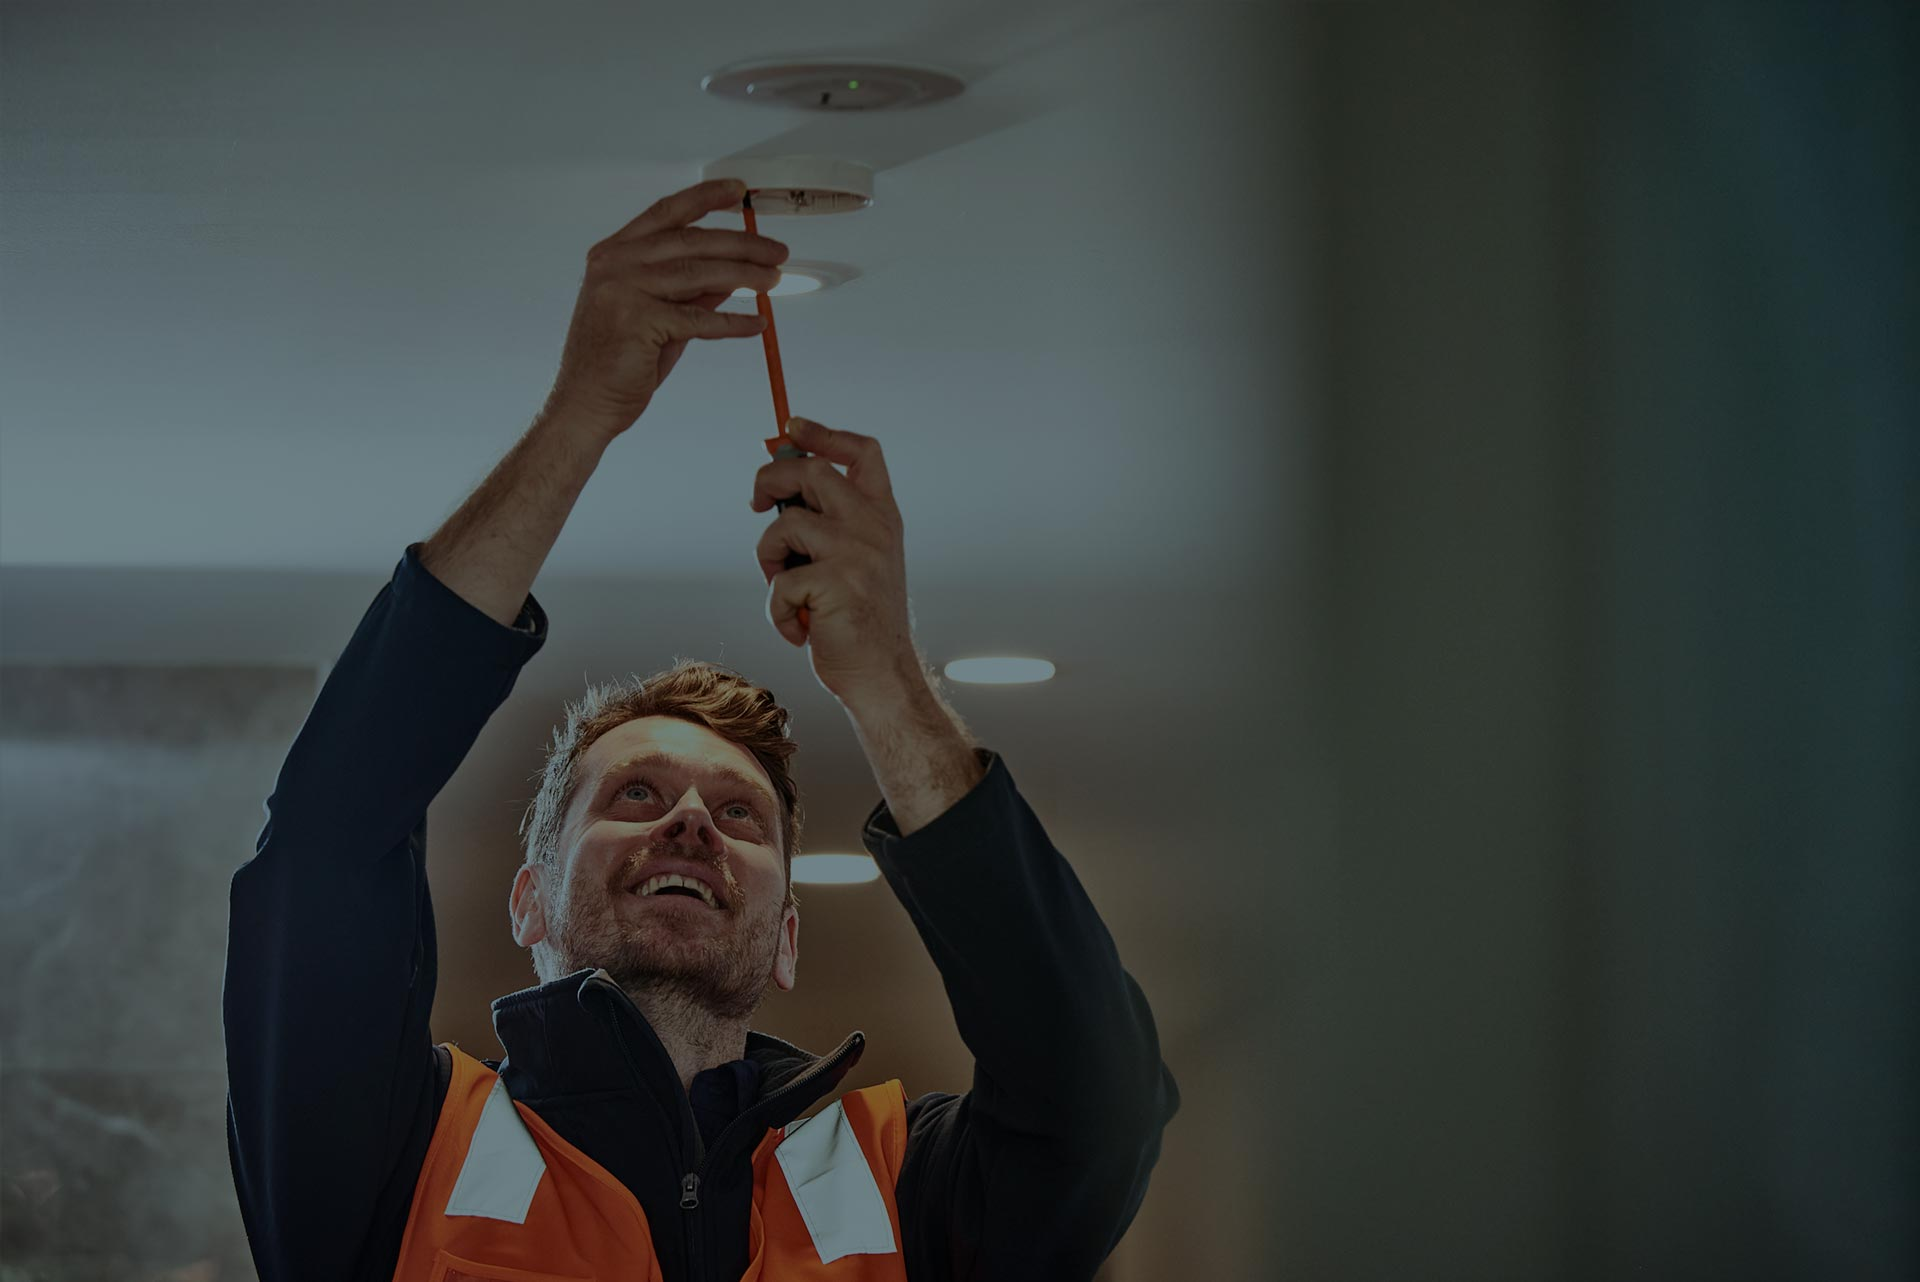 An Alexon employee unscrewing a smoke alarm to perform a routine inspection.